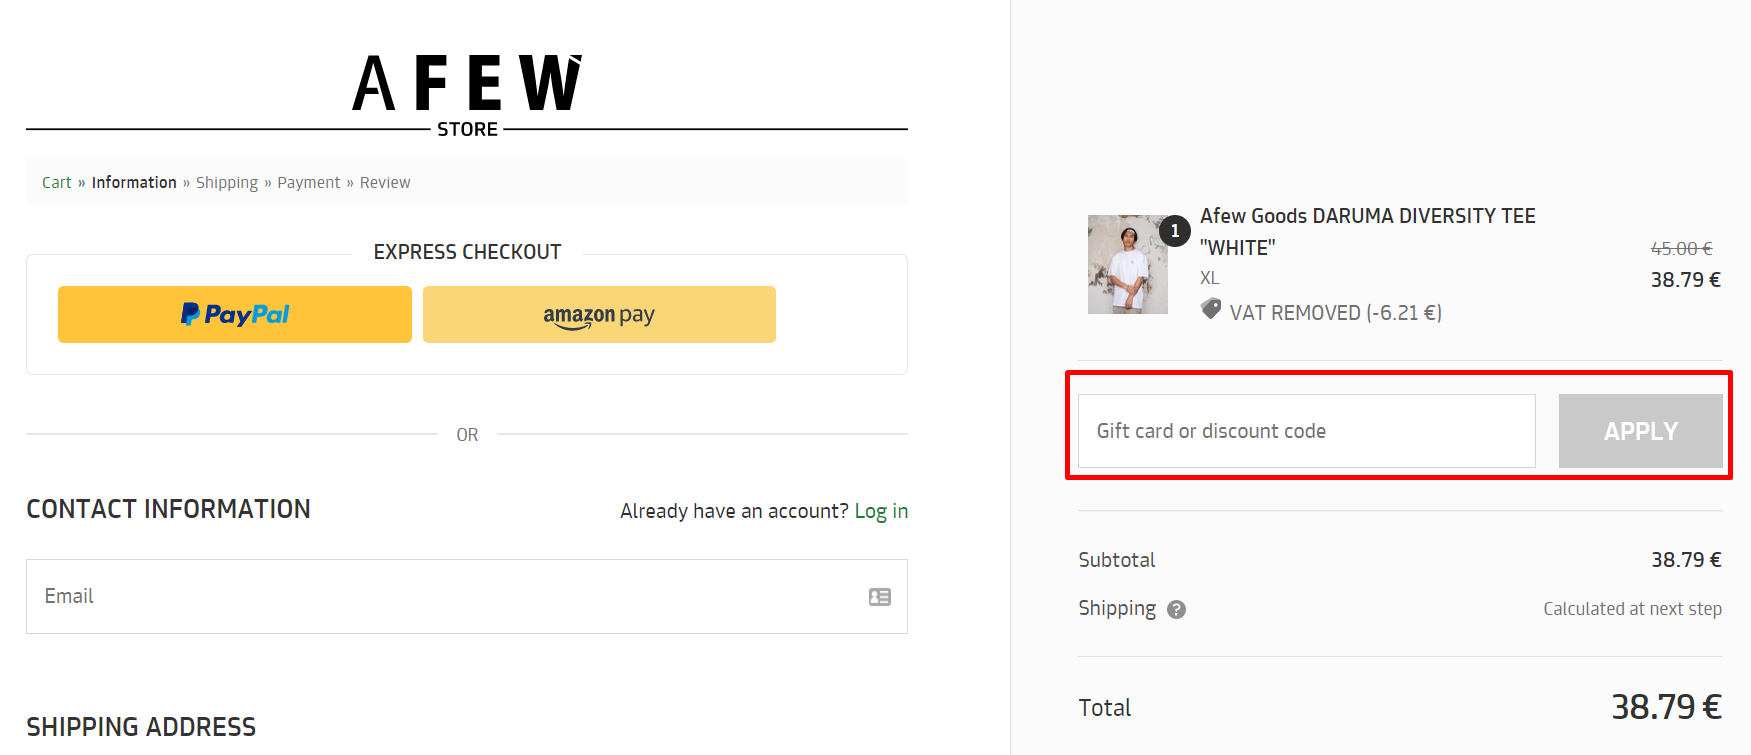 How do I use my Afew Store discount code?